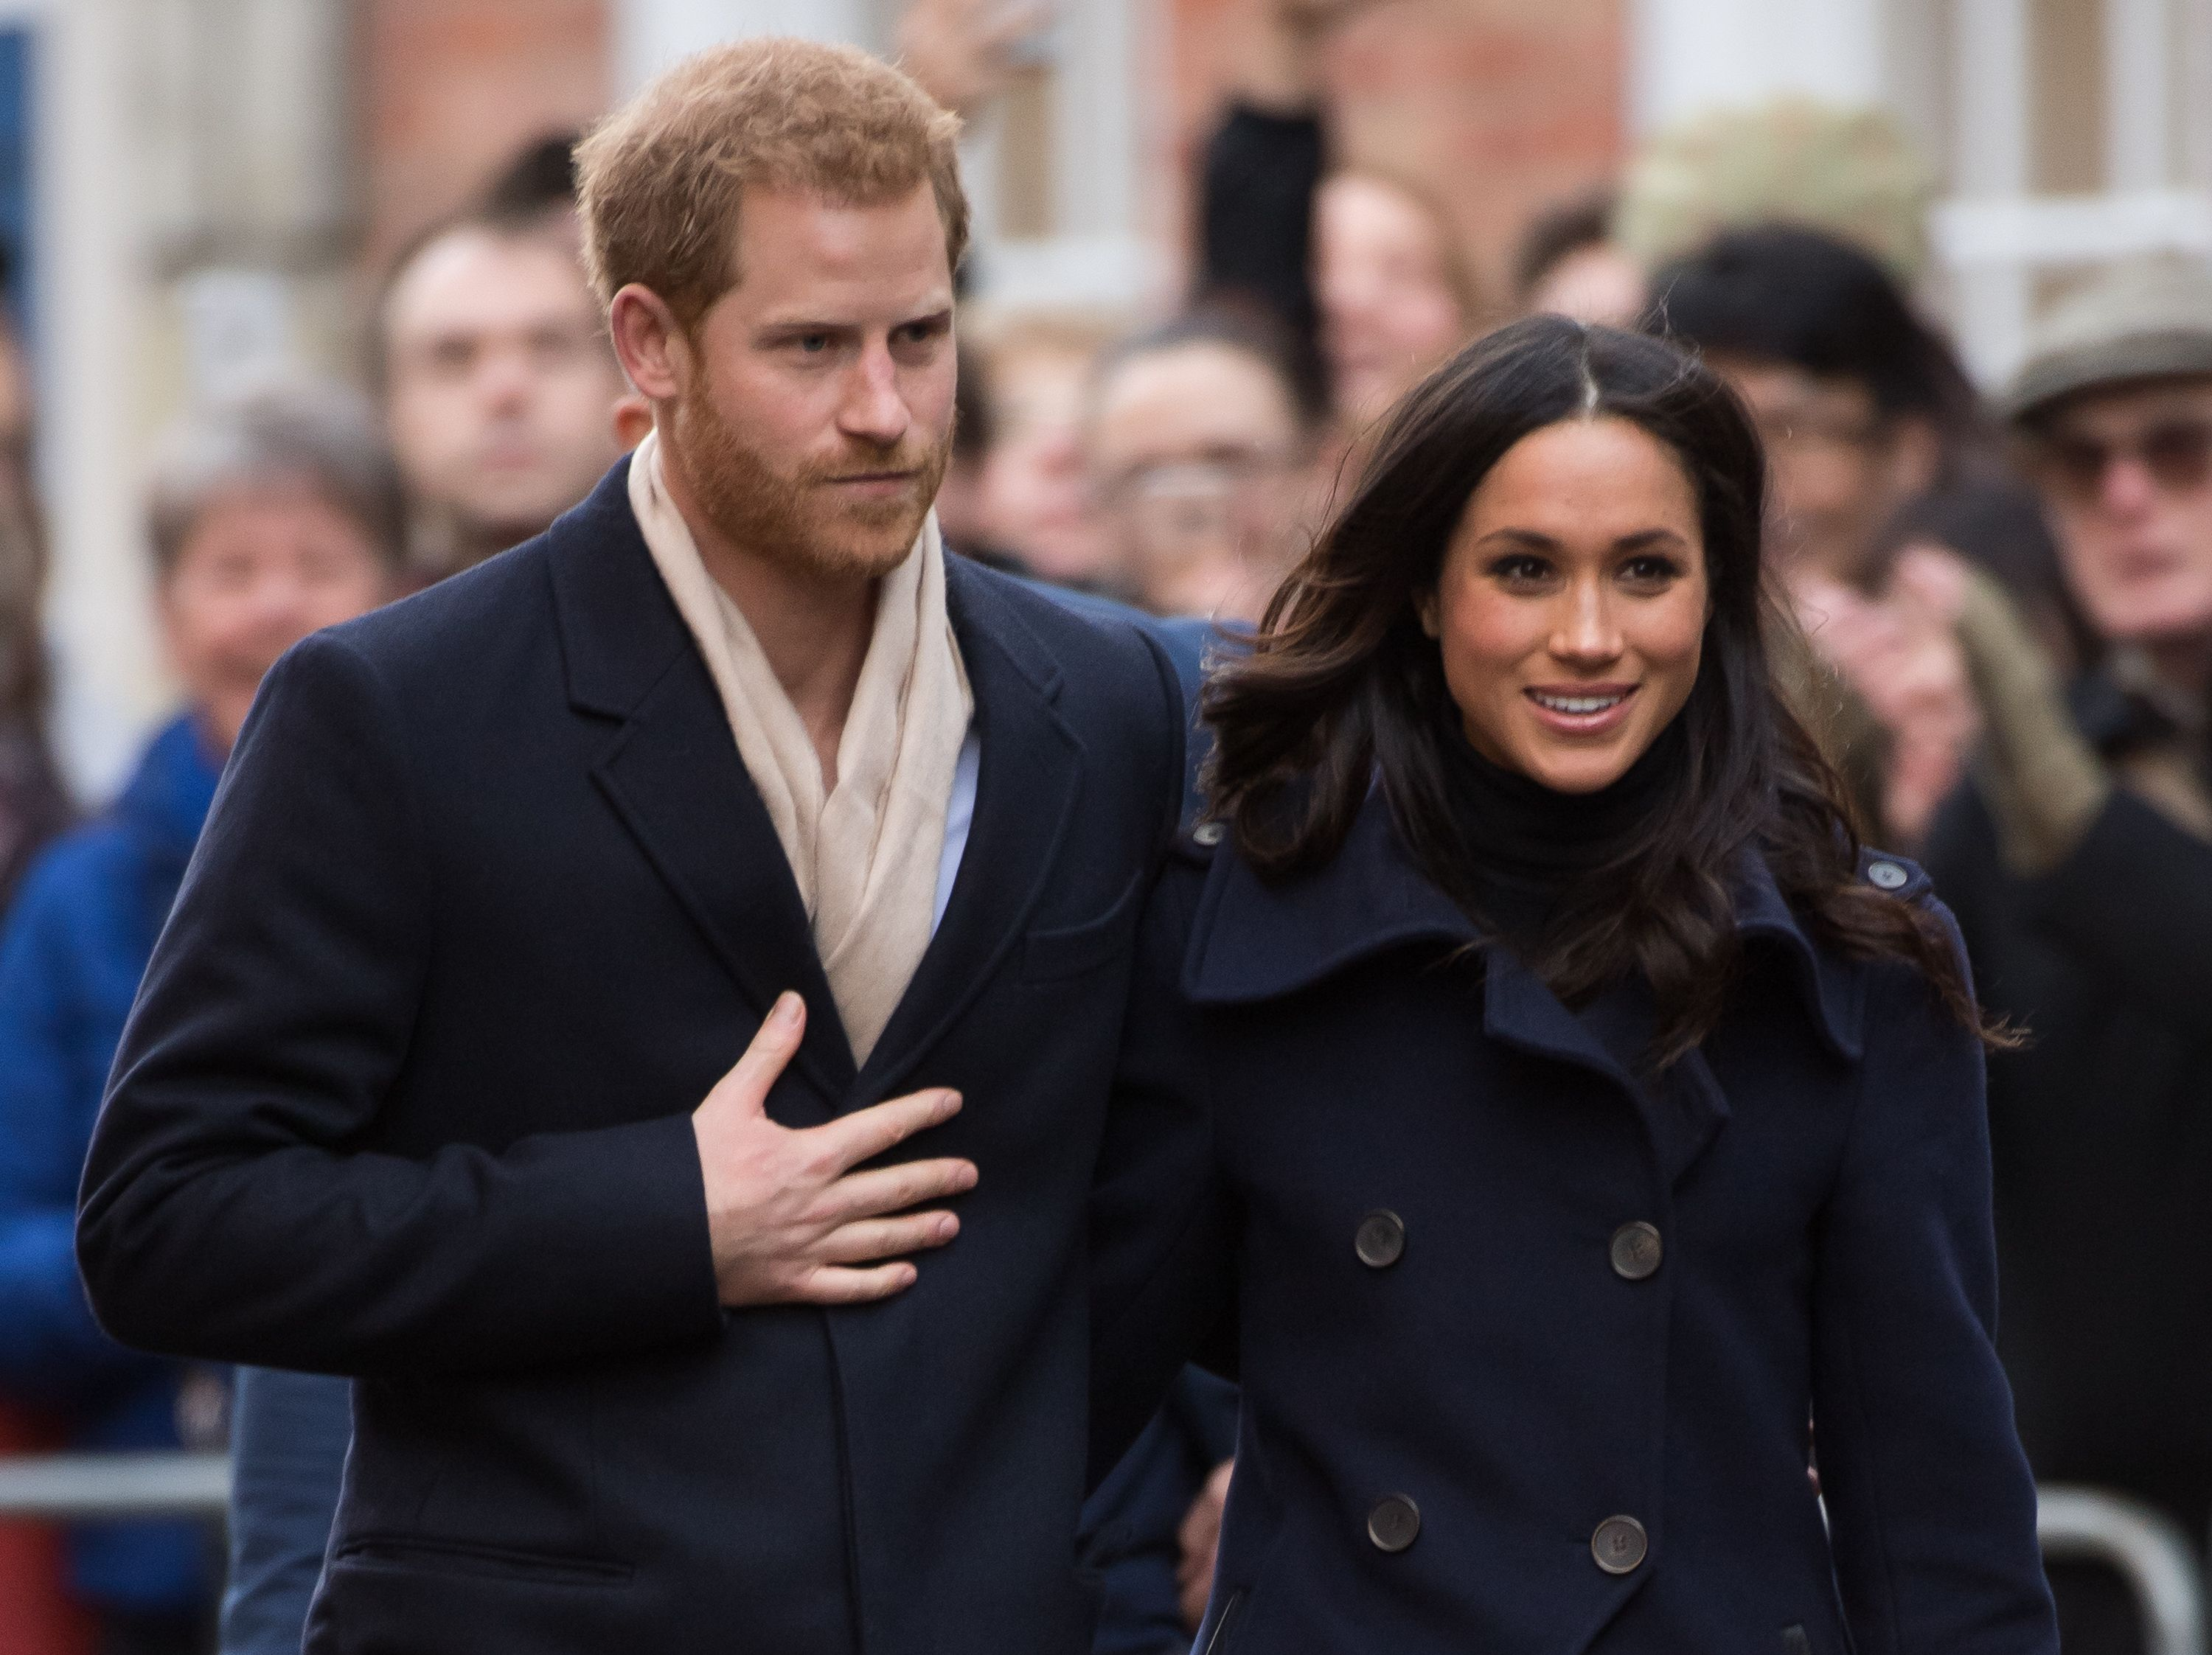 Prince Harry and Meghan send wreath with symbolic flowers for Prince Philip's funeral